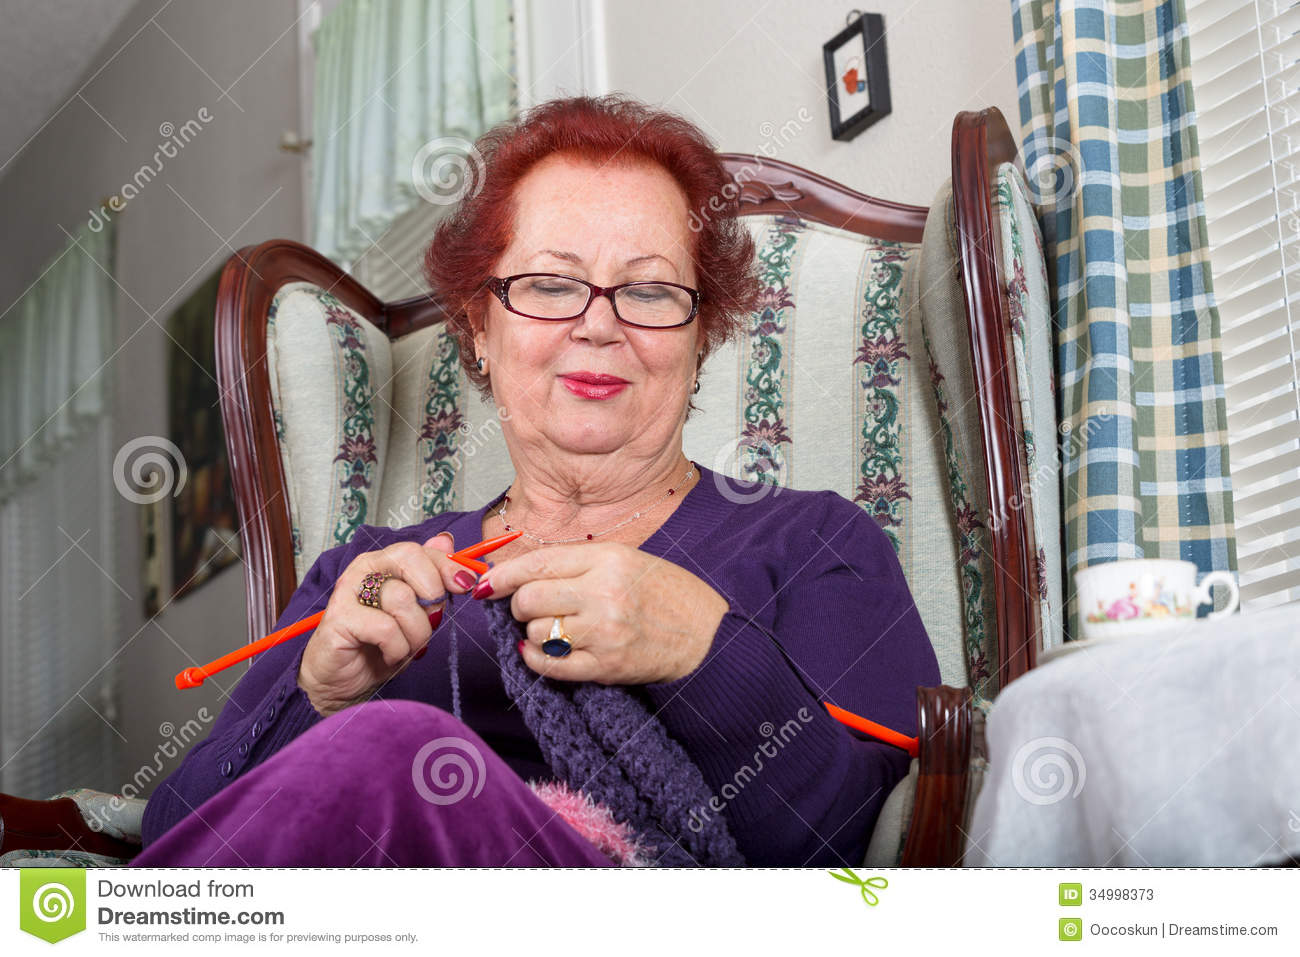 Old Lady Knitting Images : Senior woman relaxing while knitting happily stock photos